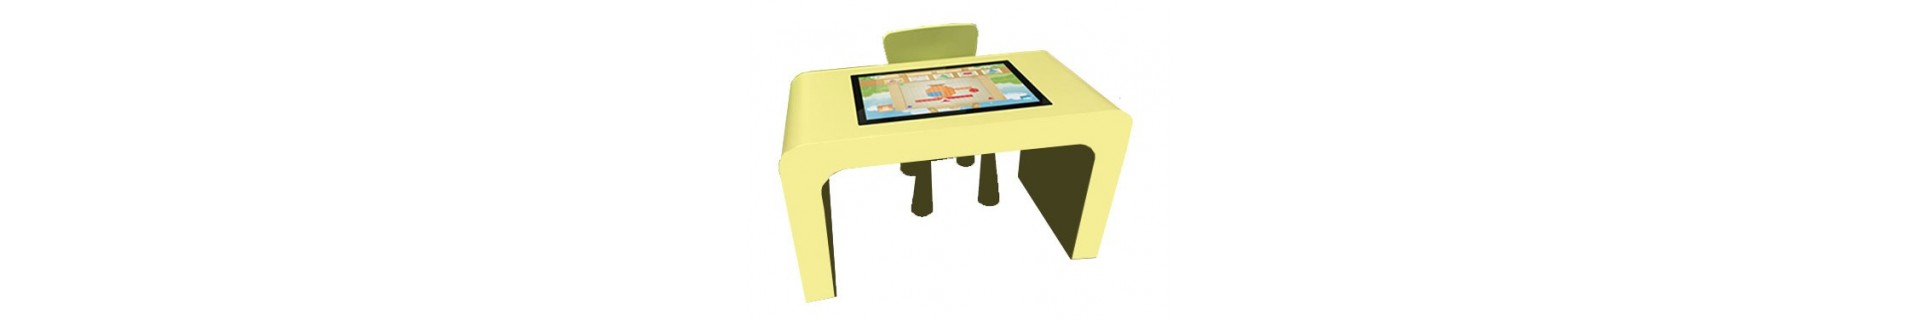 Bornes|Tables enfants